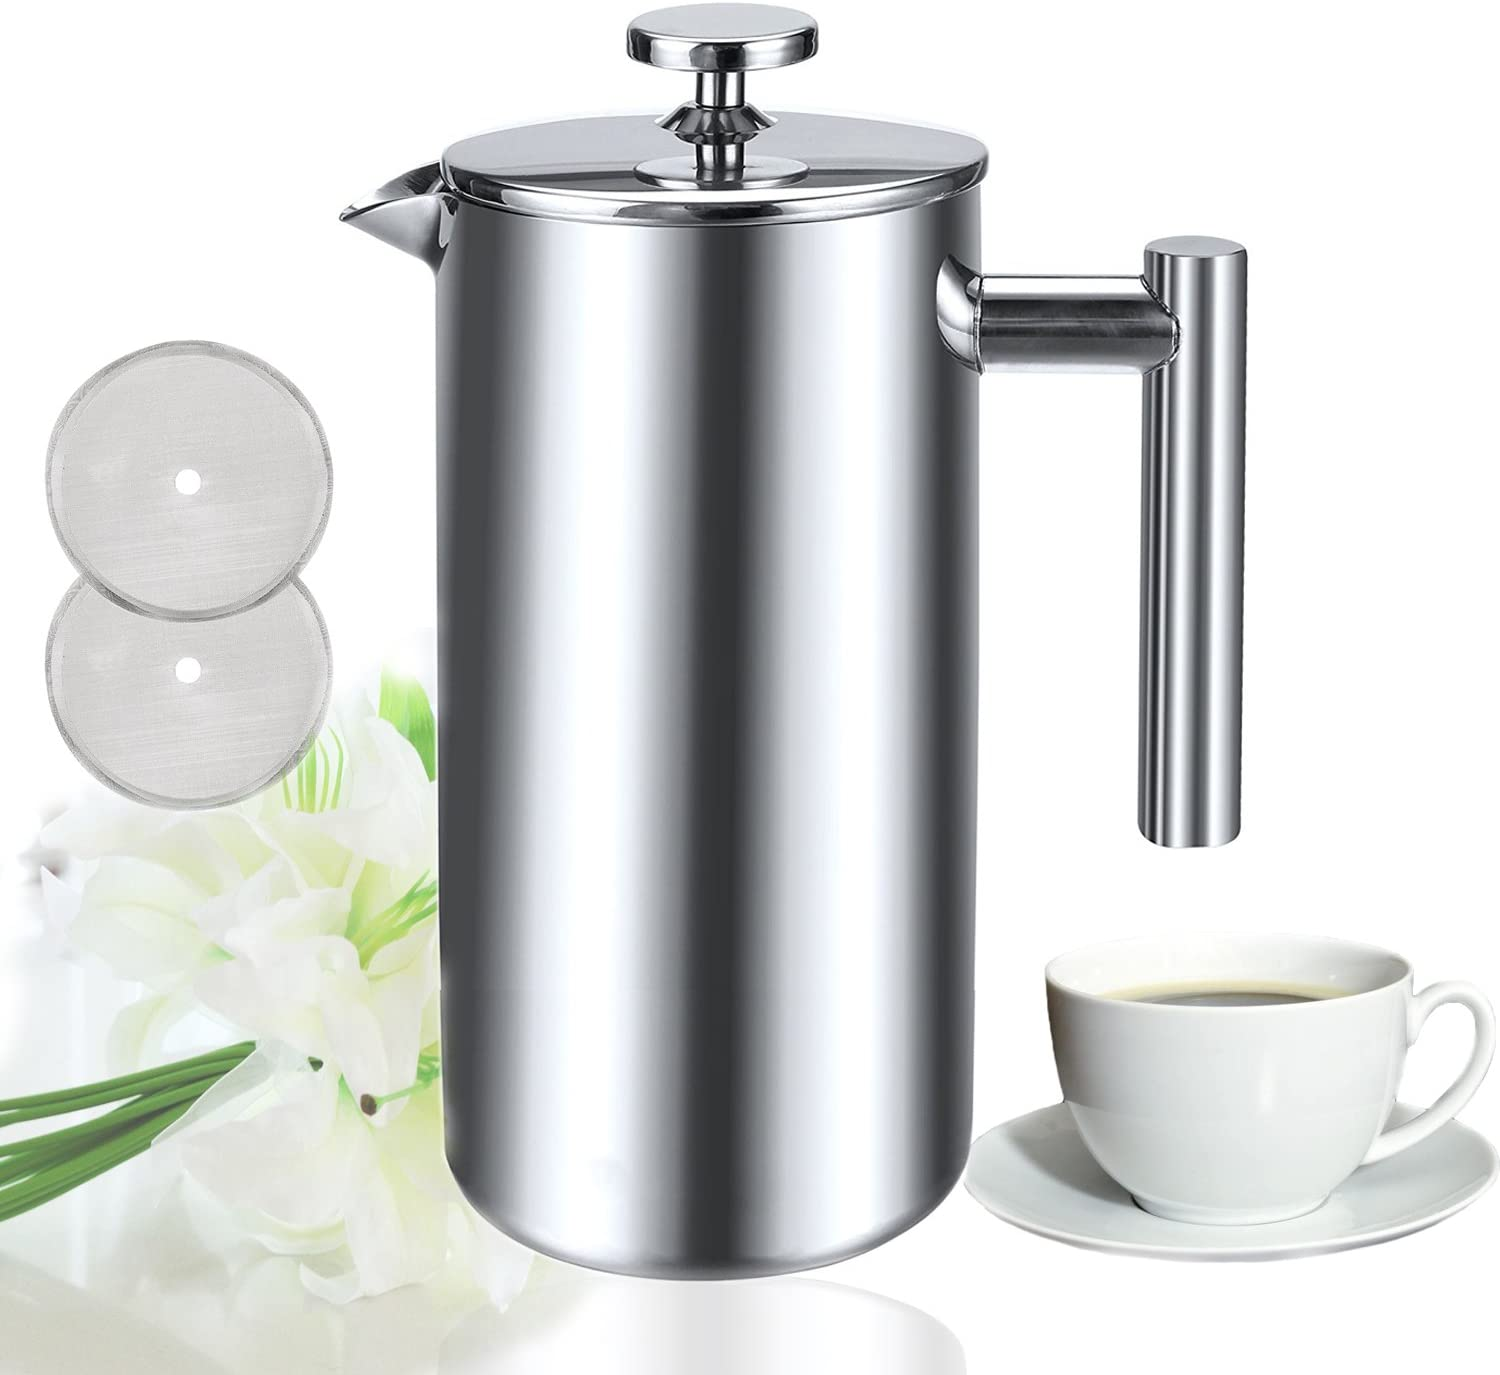 Sailnovo 8 Cups French Coffee Press Coffee Tea Maker Brewer Filter Pot Plunger, 34 Oz 1000ml Double Walled Insulated Stainless Steel Cafetiere with triple filter extraction